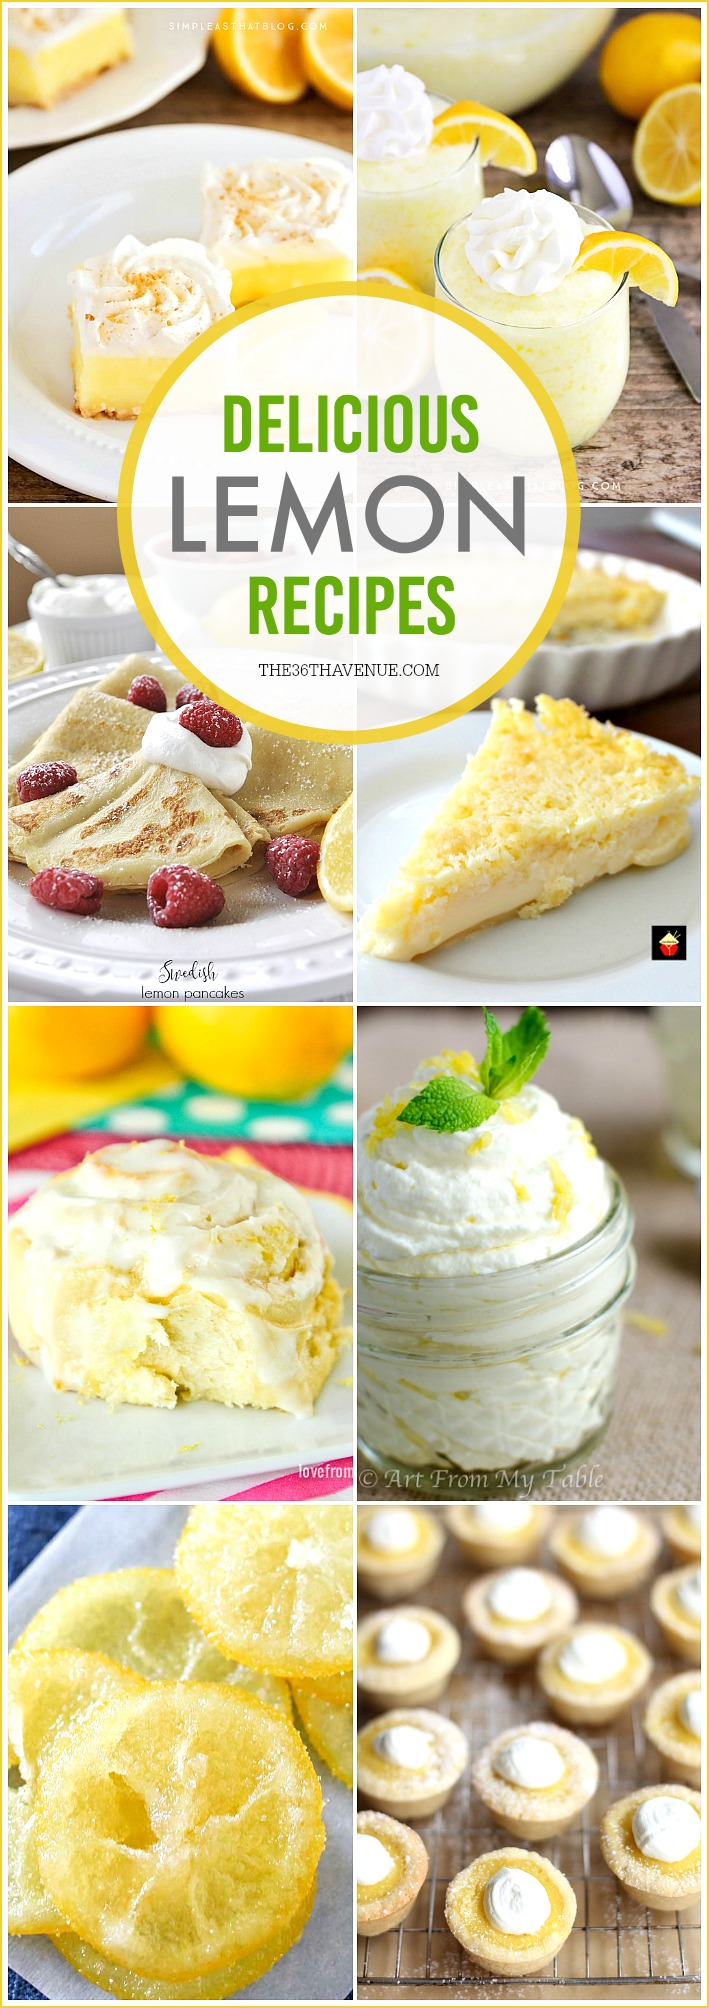 Lemon Recipes the36thavenue.com